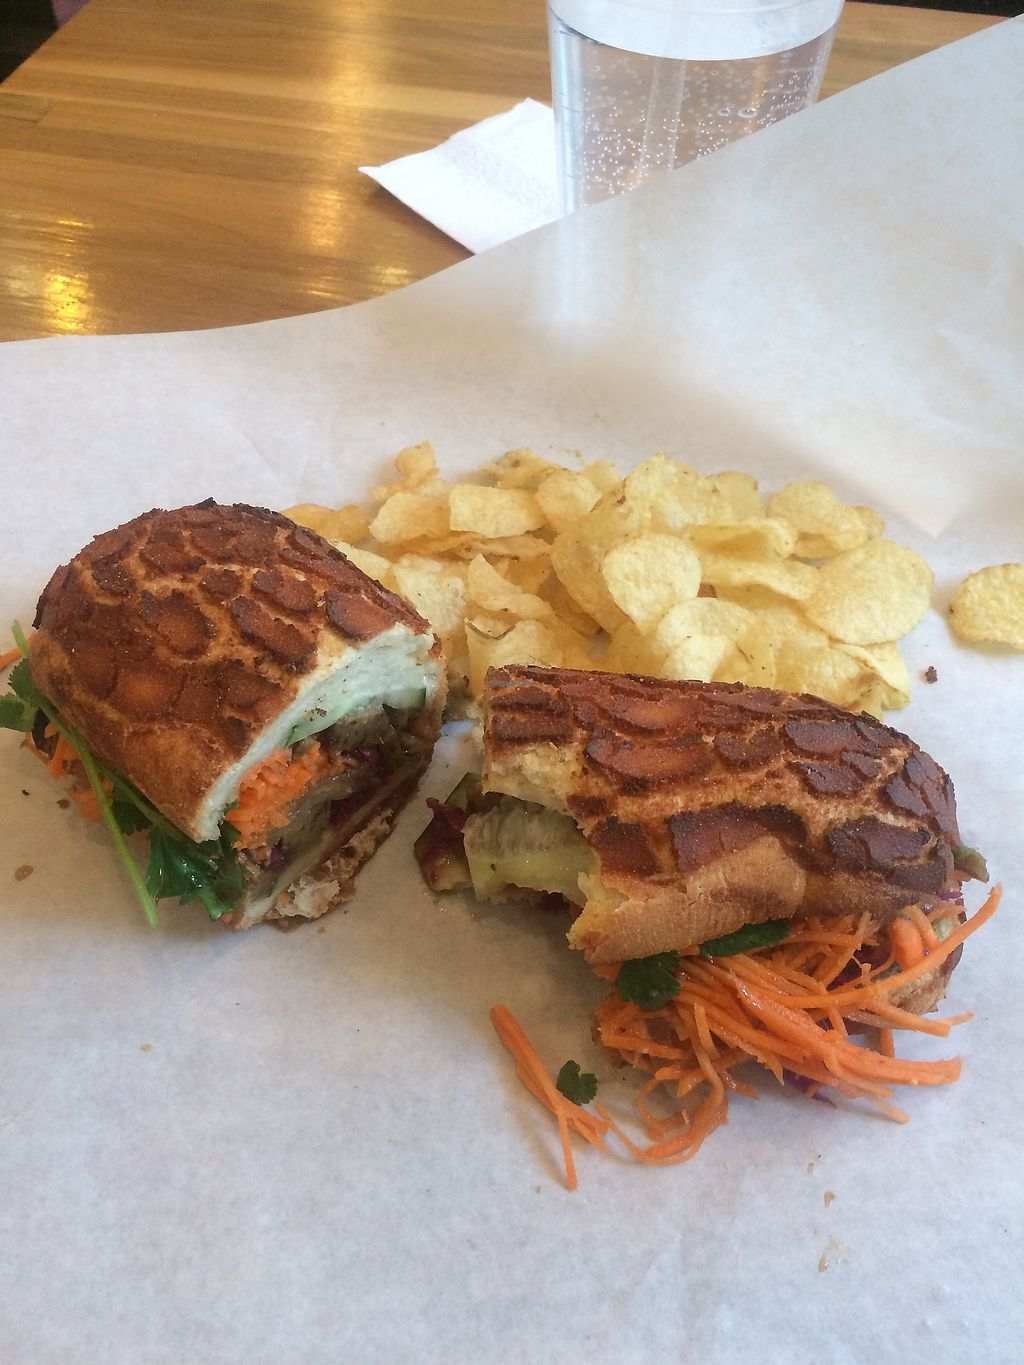 """Photo of Soulwich  by <a href=""""/members/profile/Bigsully92"""">Bigsully92</a> <br/>Indonesian BBQ Sandwich w/ Seitan  <br/> March 5, 2018  - <a href='/contact/abuse/image/31467/367224'>Report</a>"""